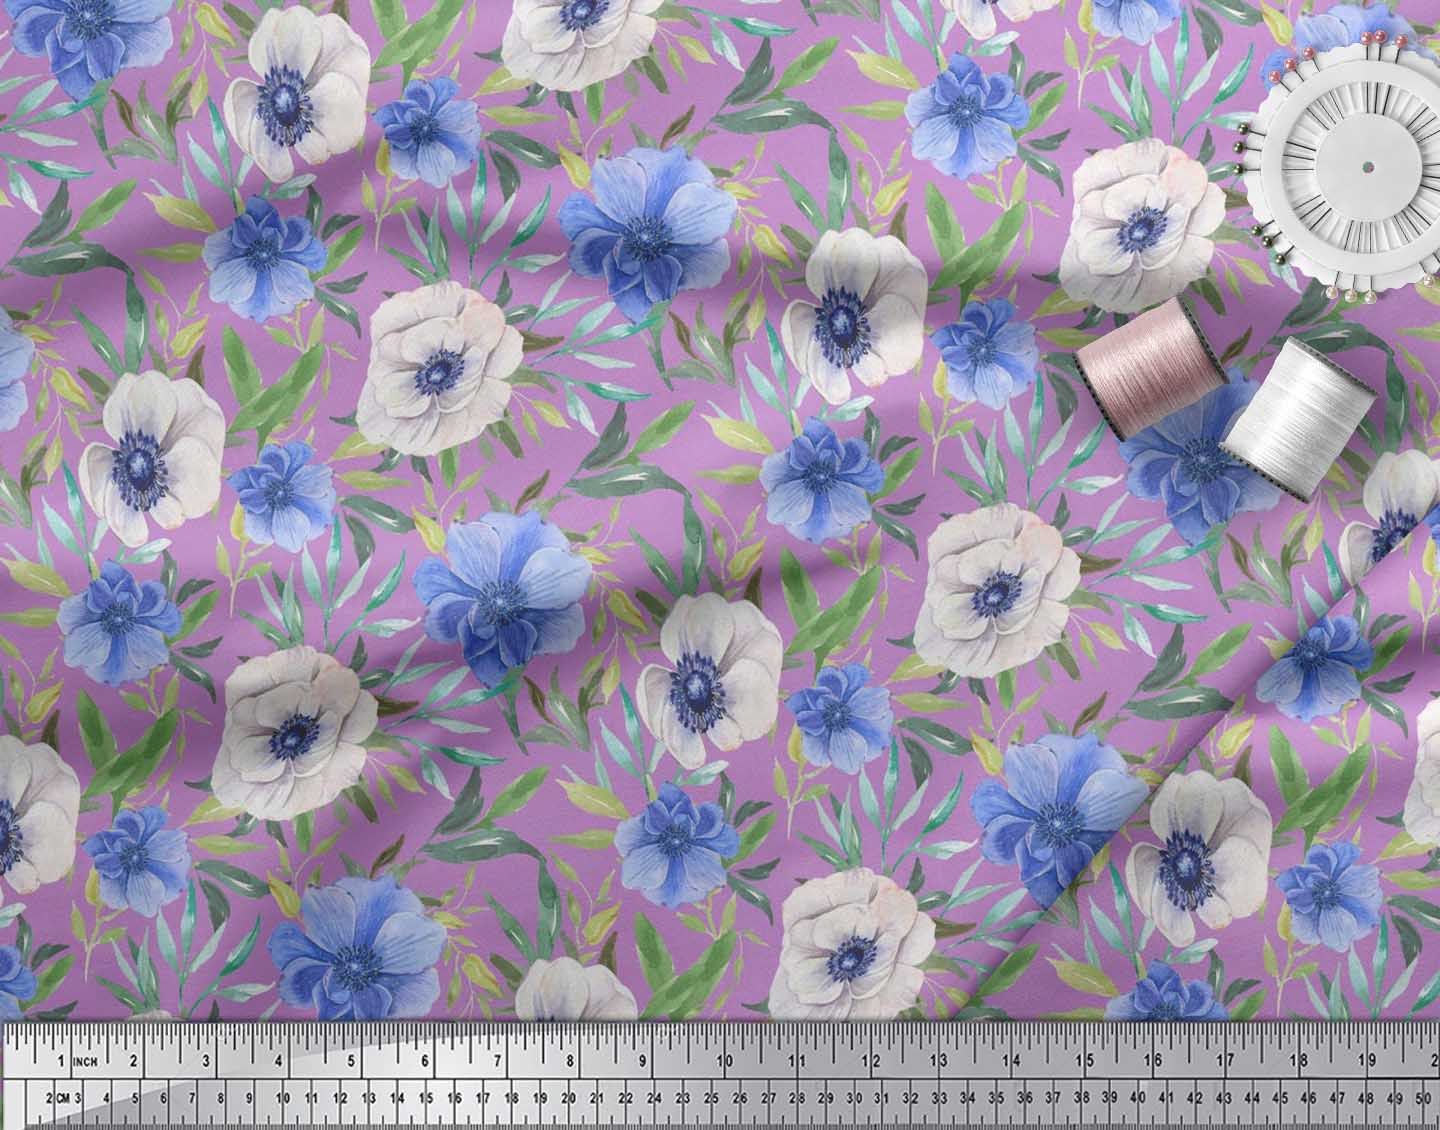 Soimoi-Cotton-Poplin-Fabric-Leaves-amp-Anemone-Floral-Print-Fabric-6Kw thumbnail 4